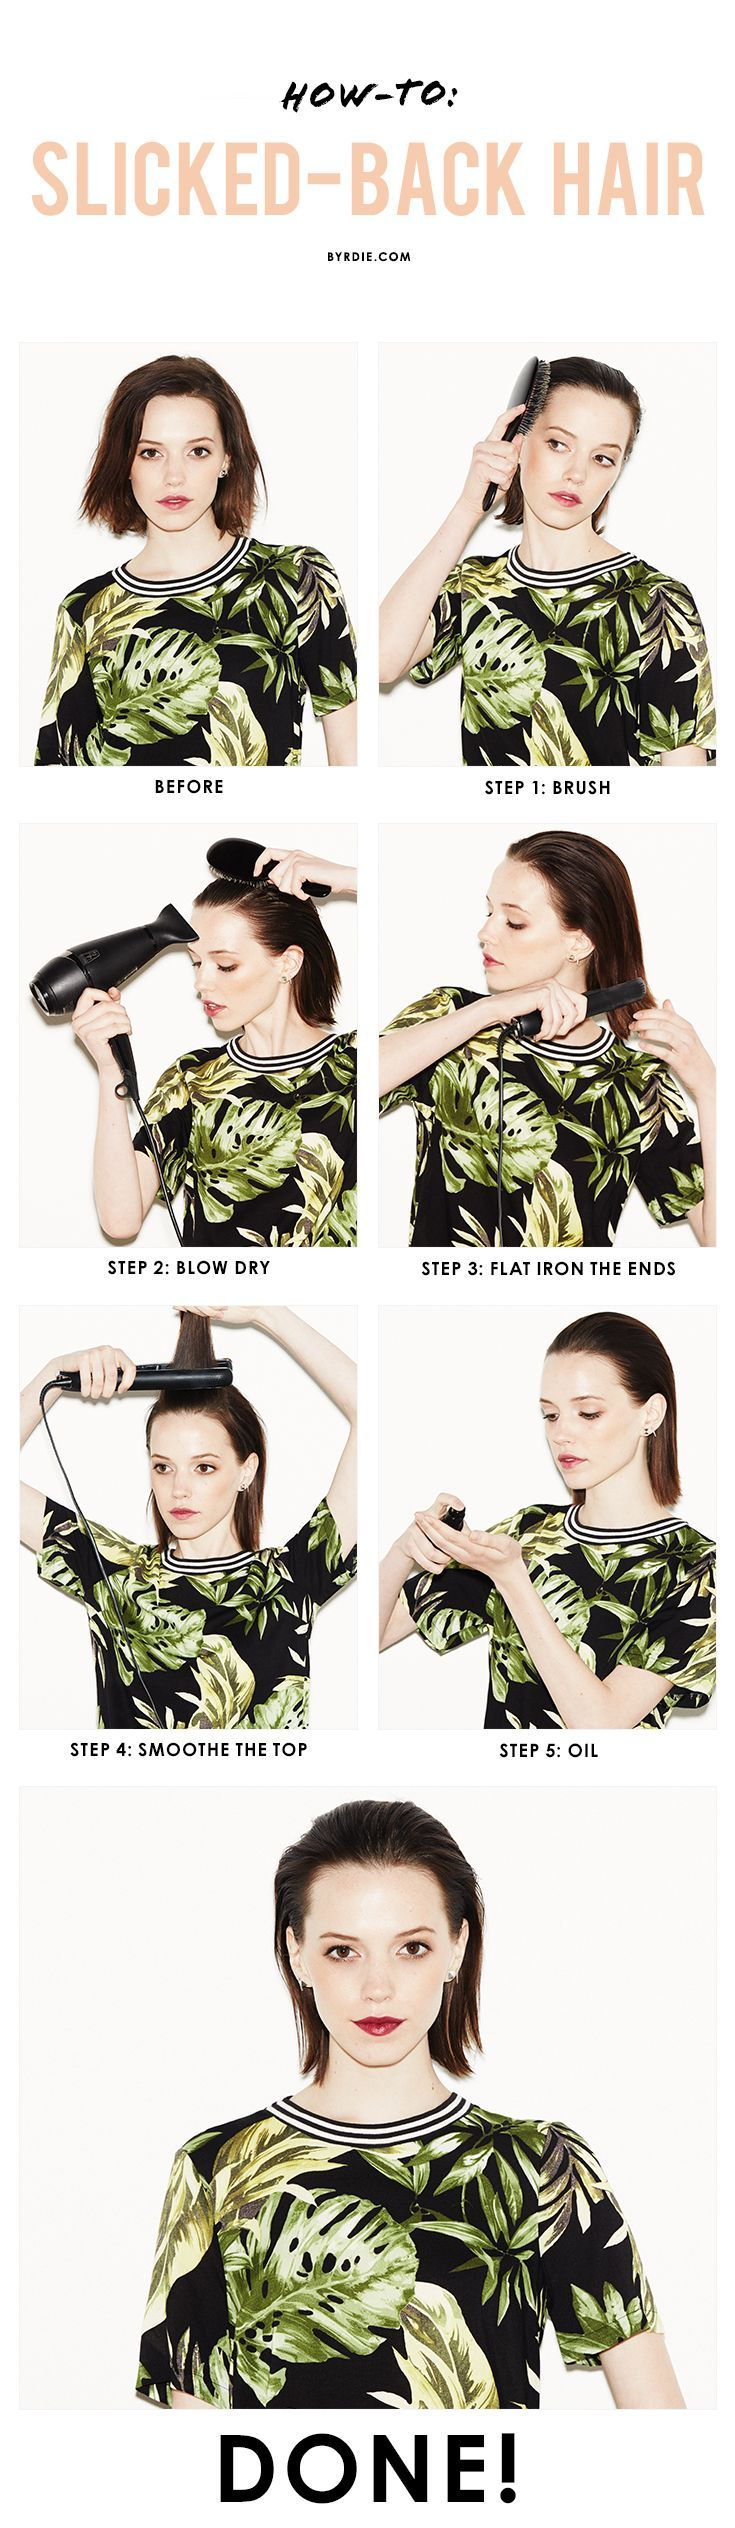 How to Style Slicked-Back Hair